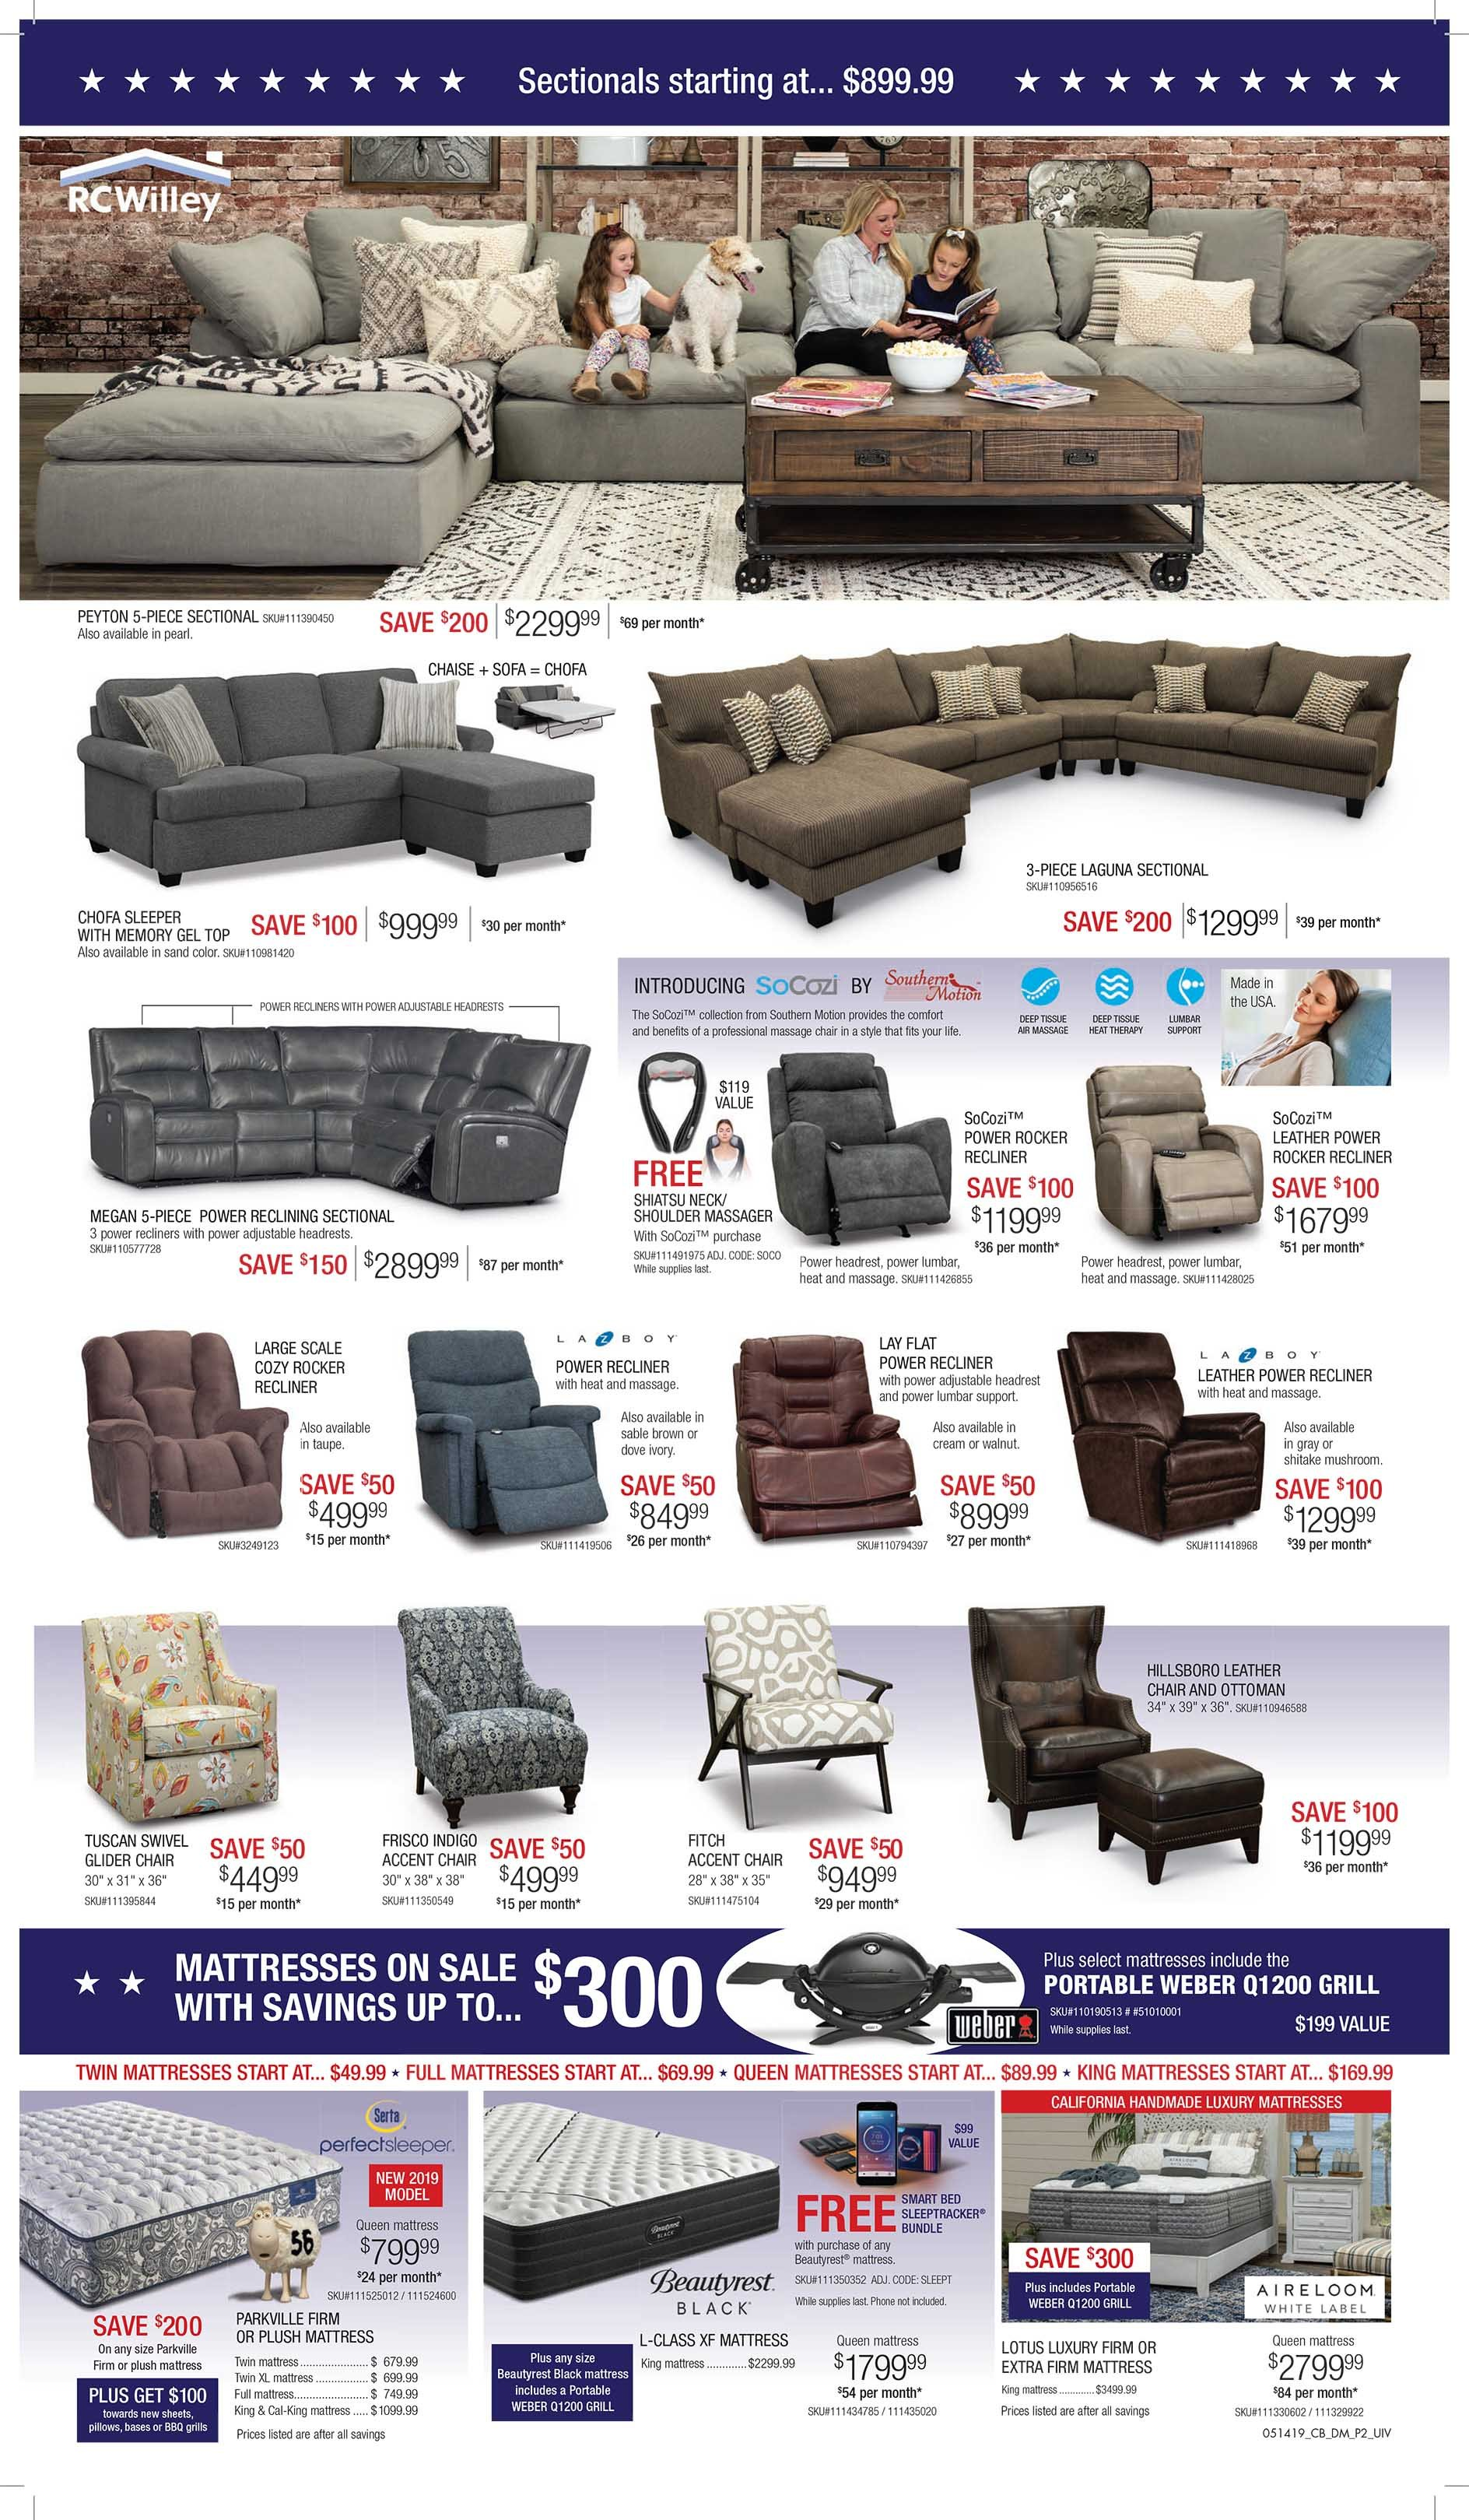 Memorial Day Savings At Rc Willey